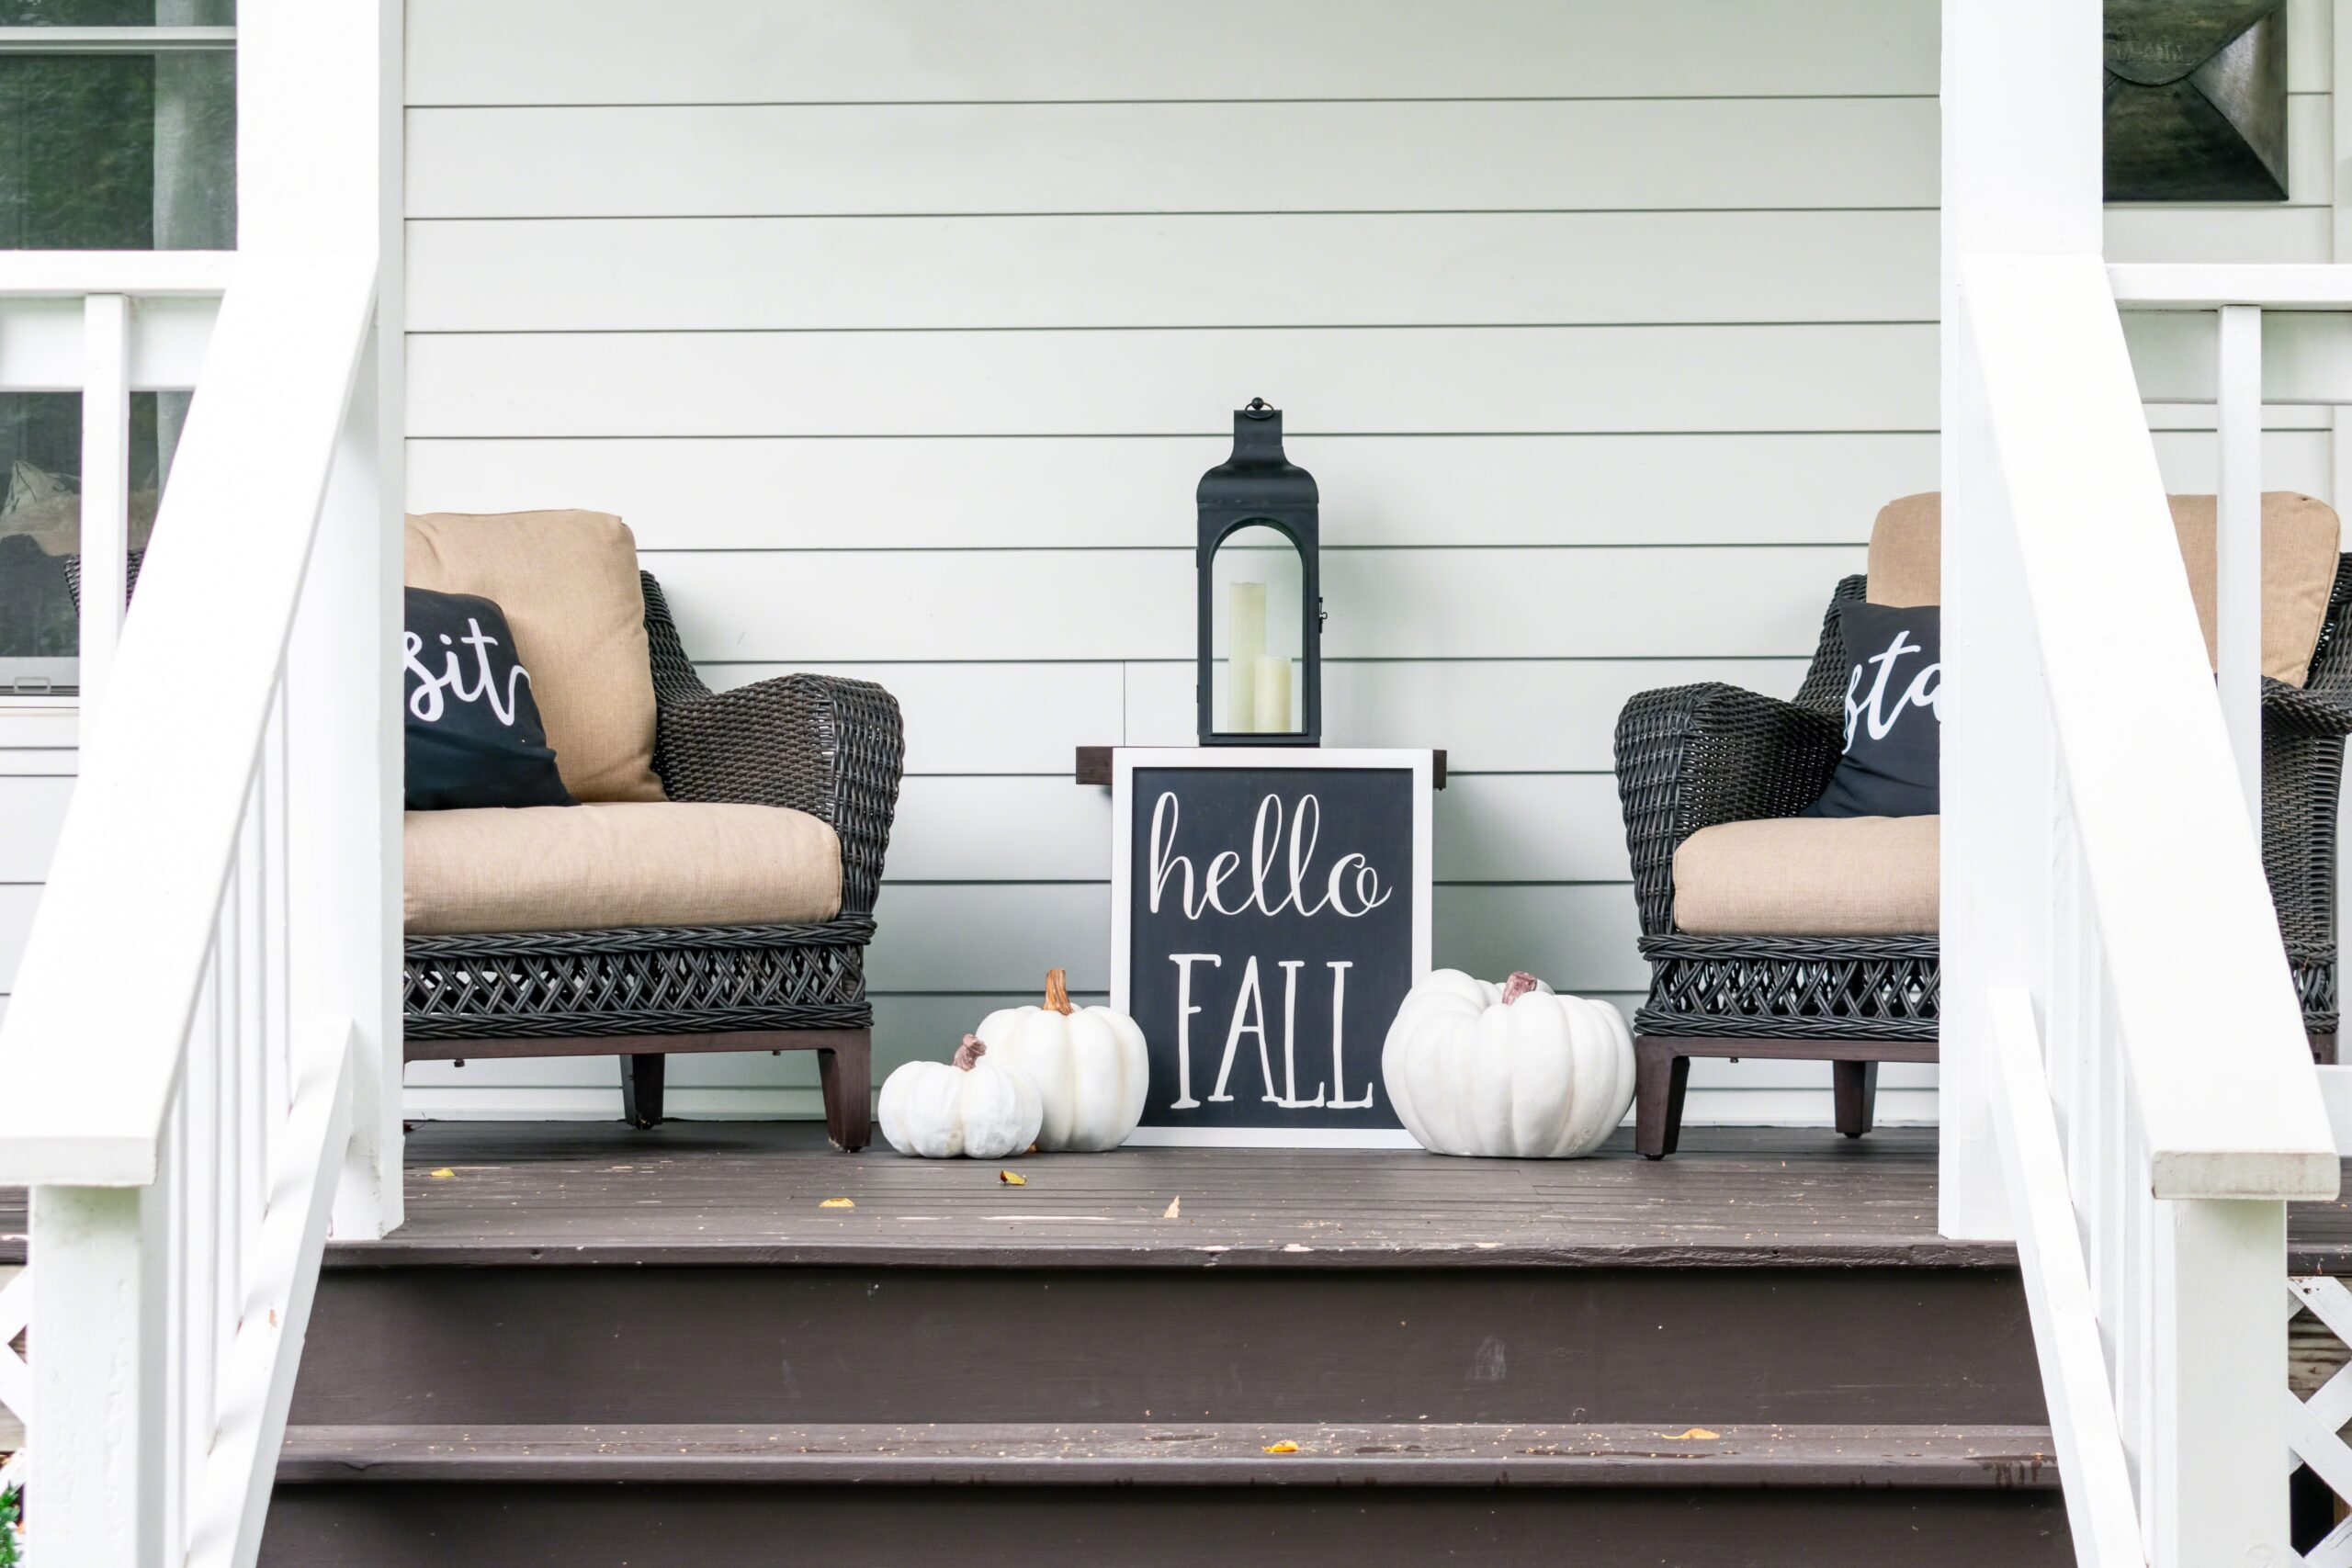 fall renovation trends for 2021